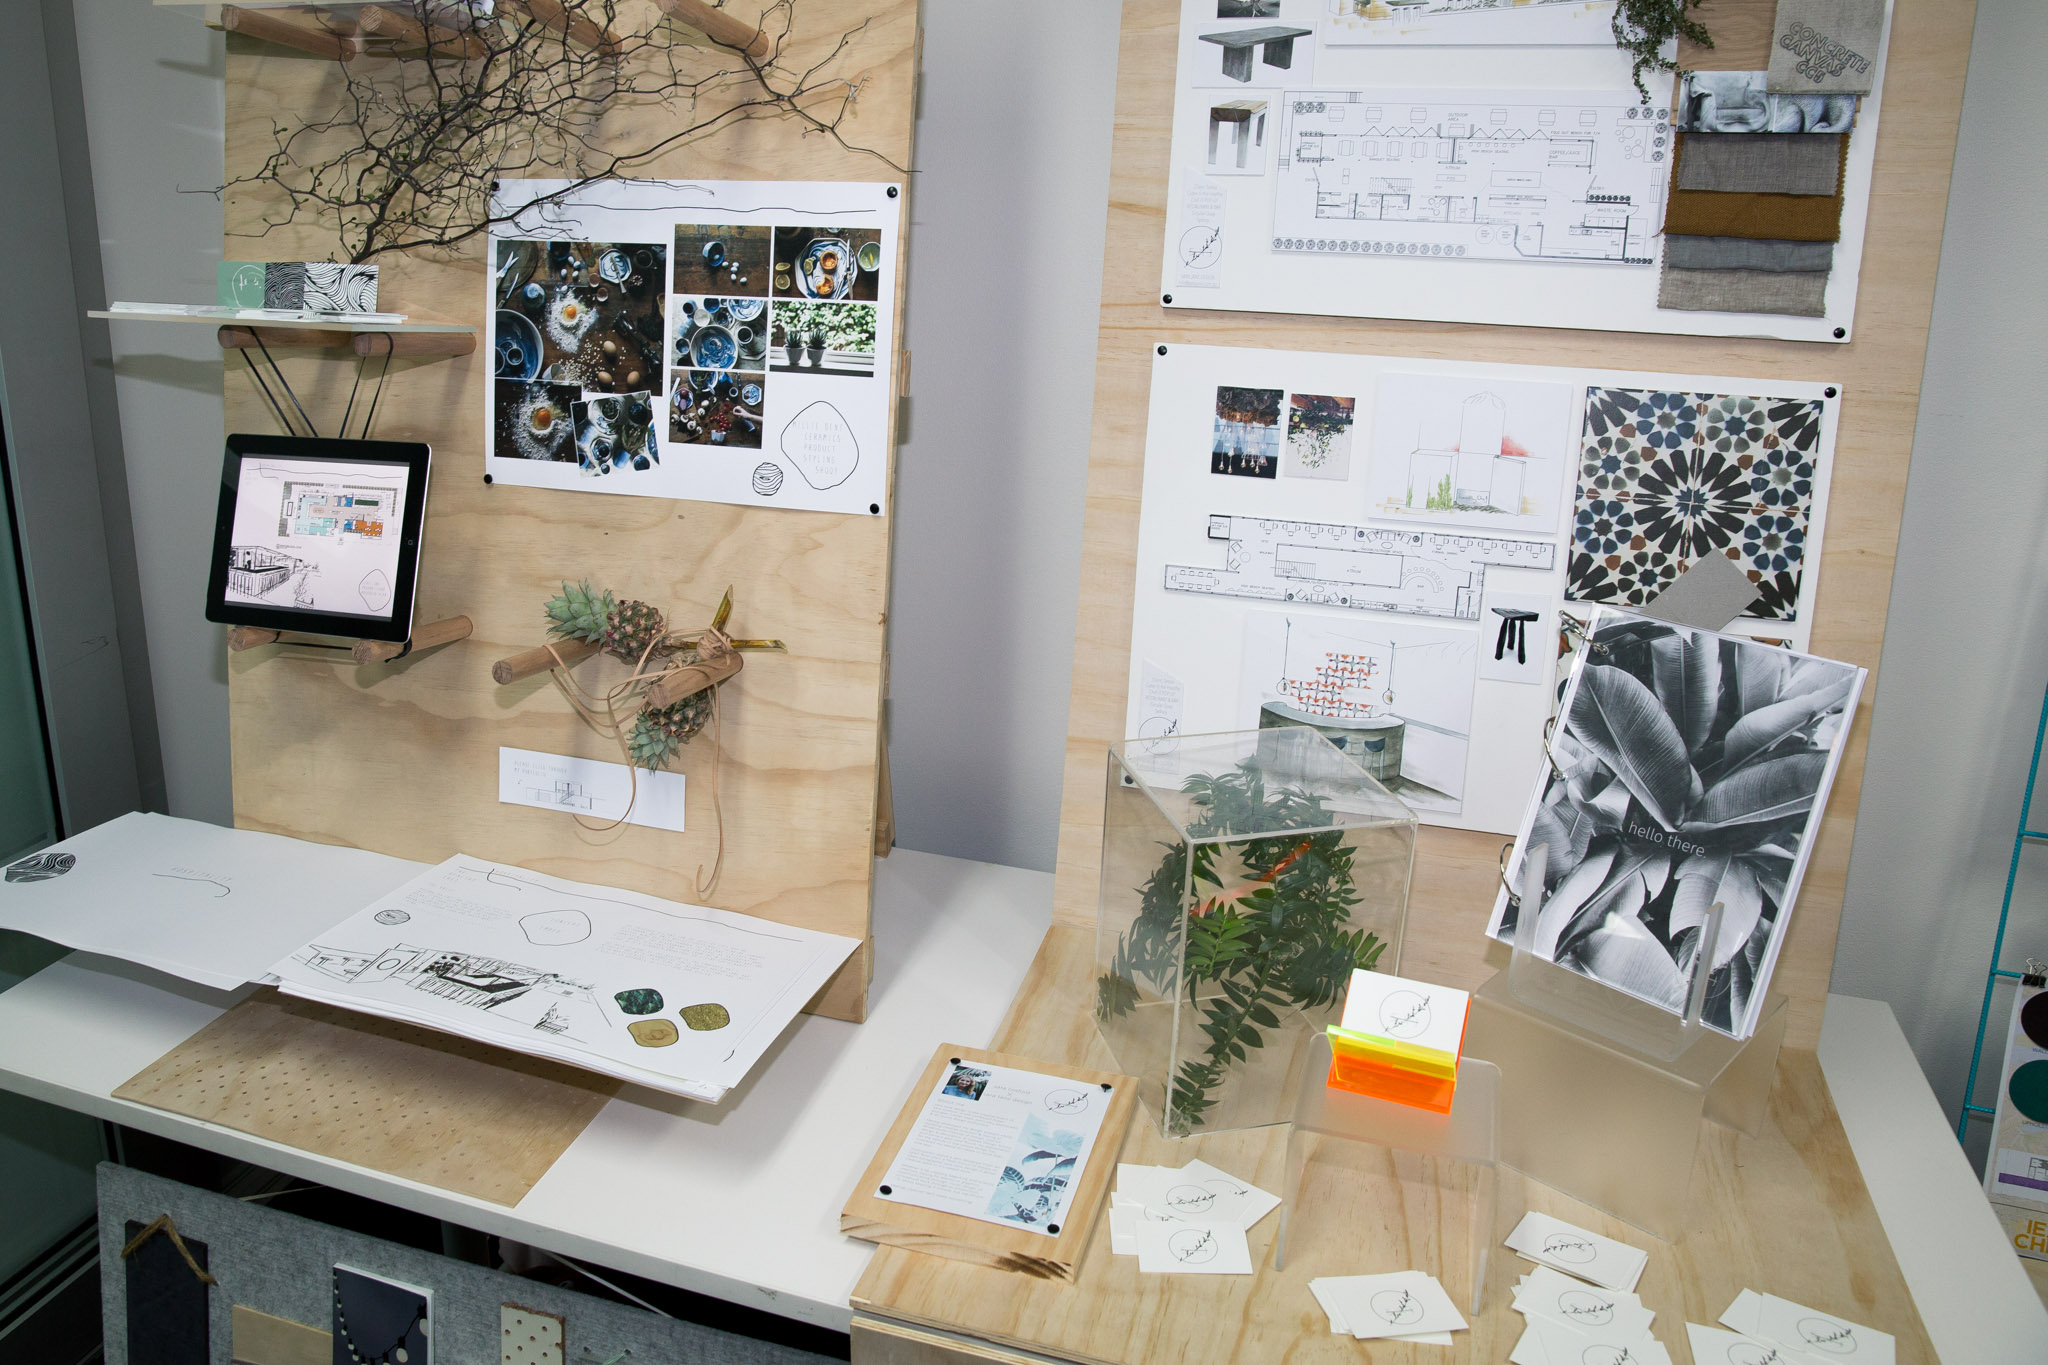 Want To Know More About Sydney Design School?